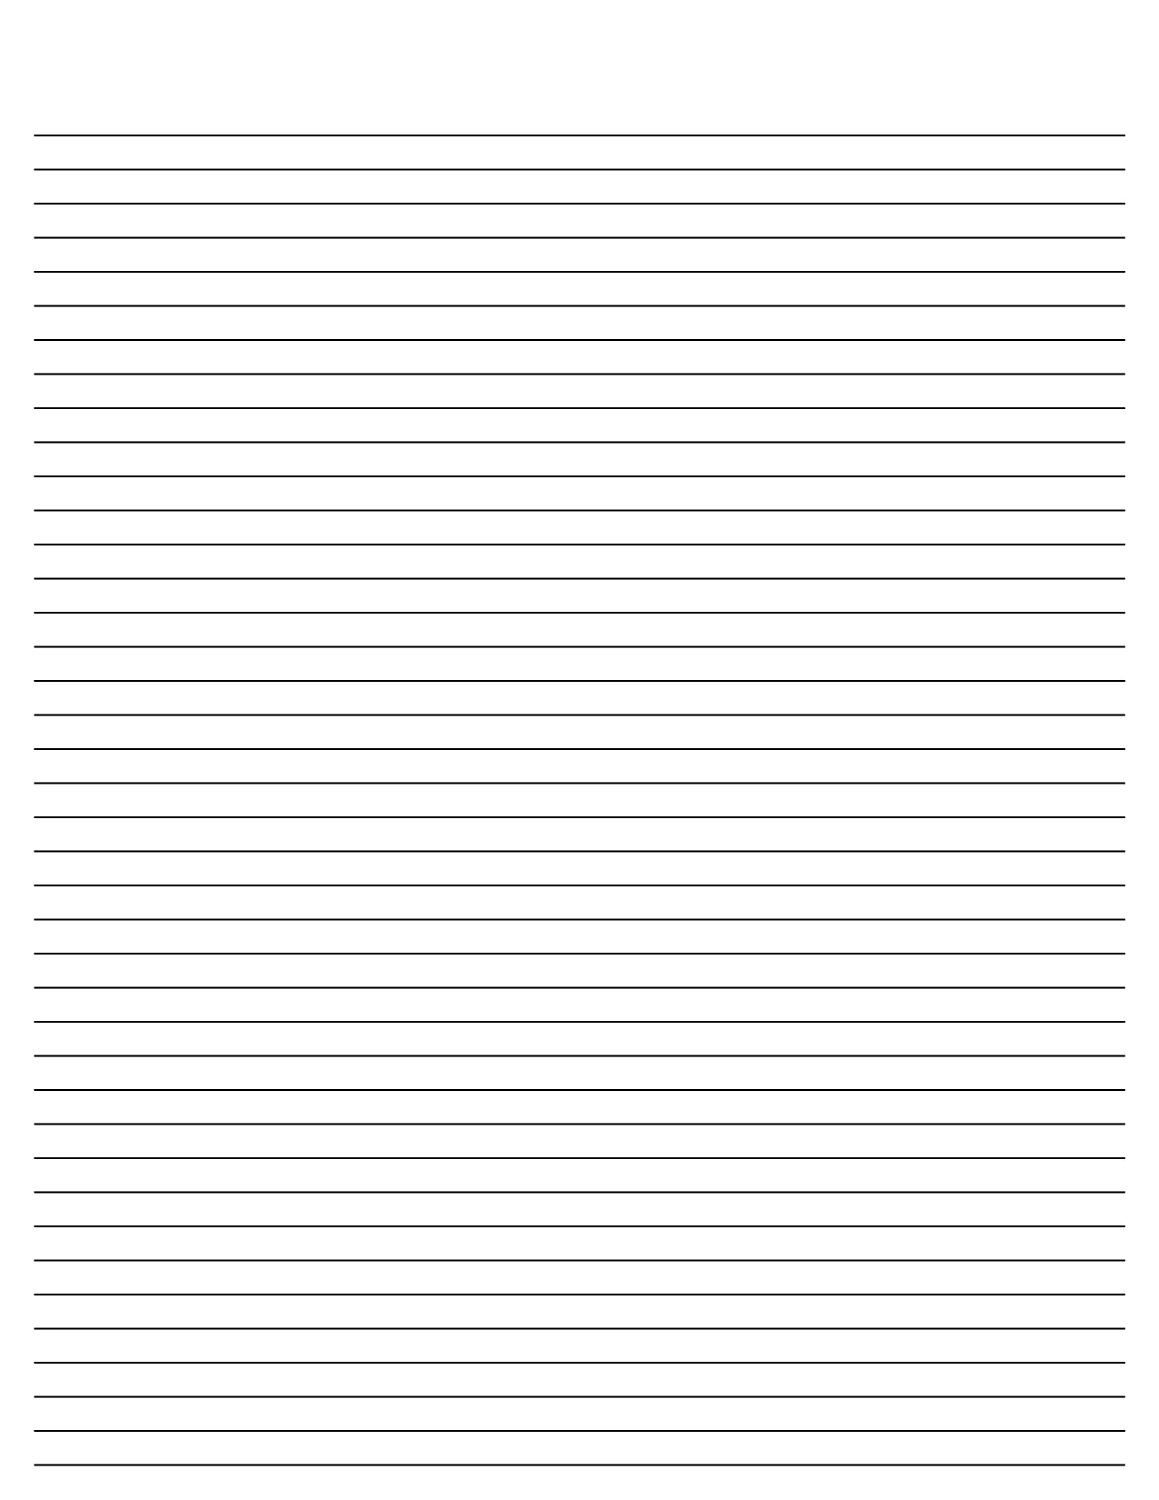 Beautiful Lined Paper For Writing Small Line Idea Lined Pages For Writing